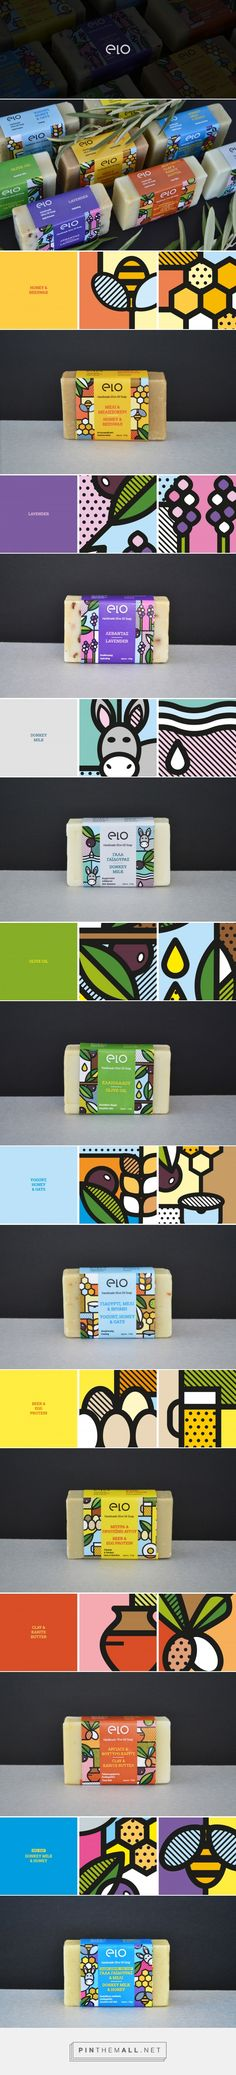 Elo Soap Packaging by Mike Karolos | Fivestar Branding Agency – Design and Branding Agency & Curated Inspiration Gallery